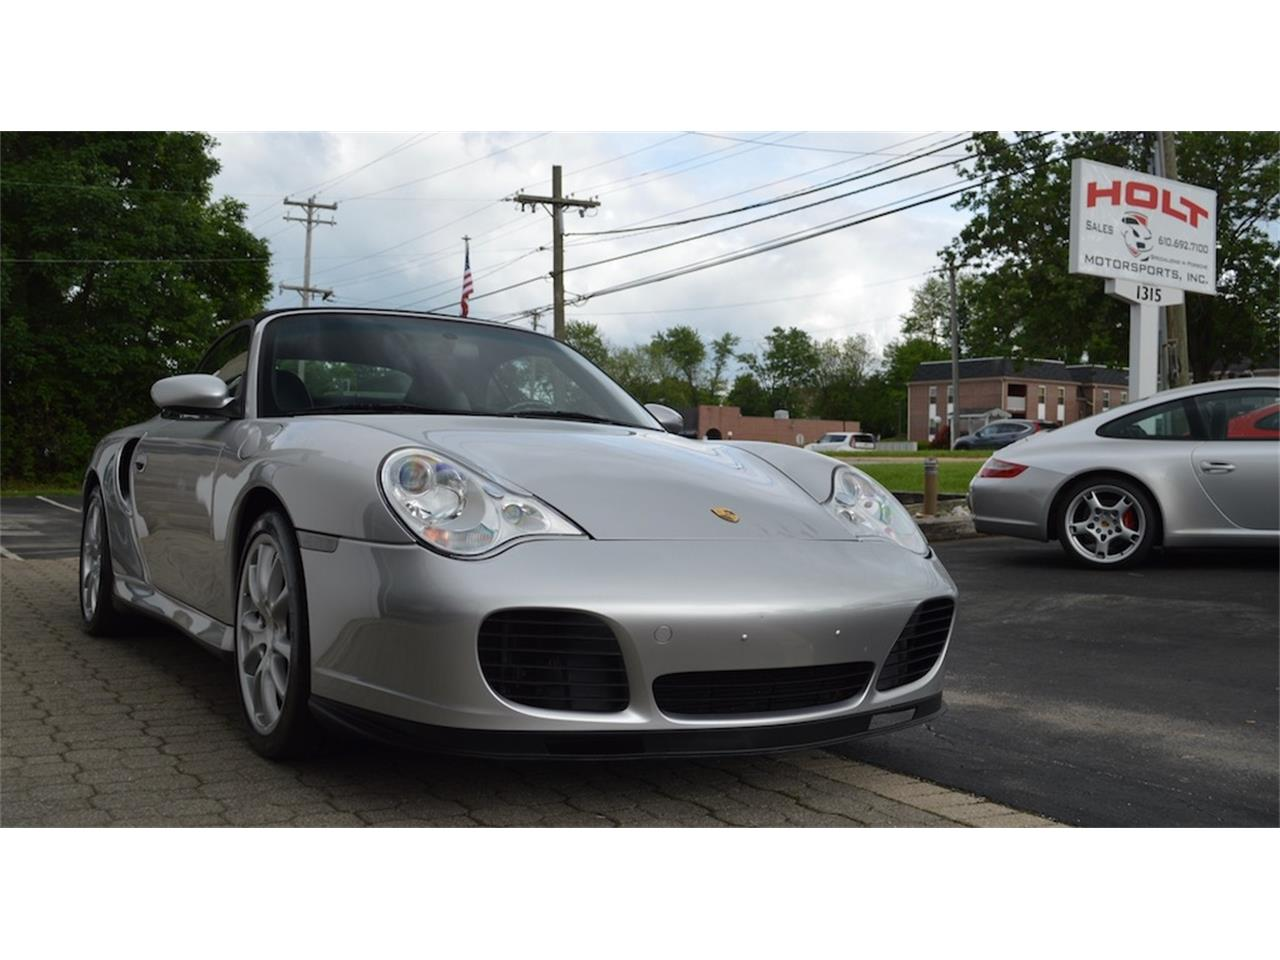 Large Picture of '04 Porsche 996 Turbo Cabriolet - $46,500.00 Offered by Holt Motorsports - NQV0